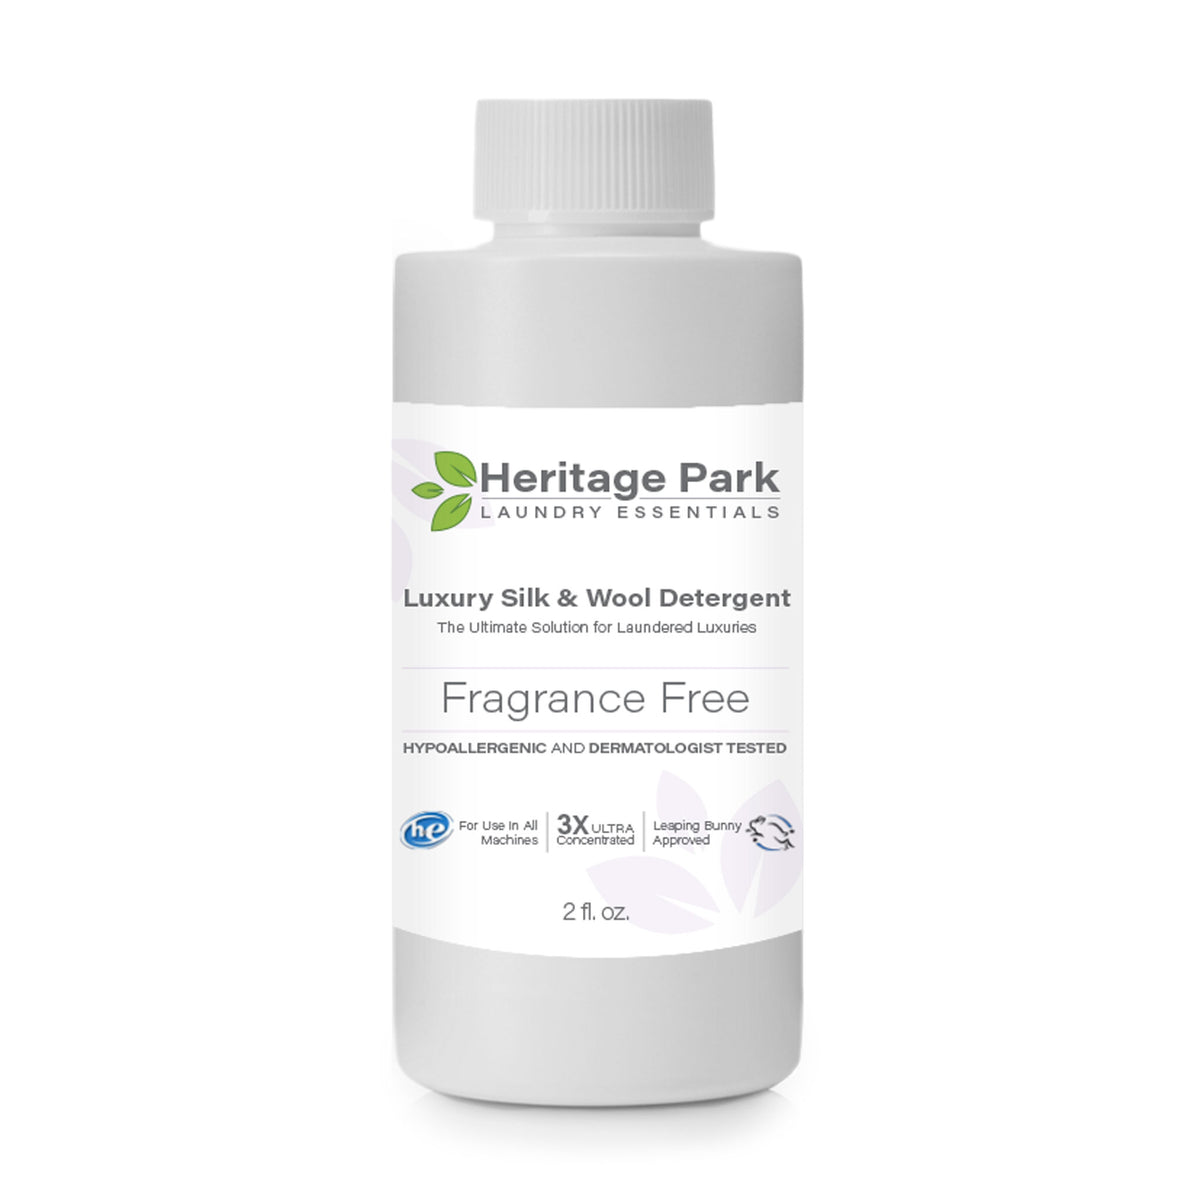 Heritage Park Luxury Silk & Wool Detergent